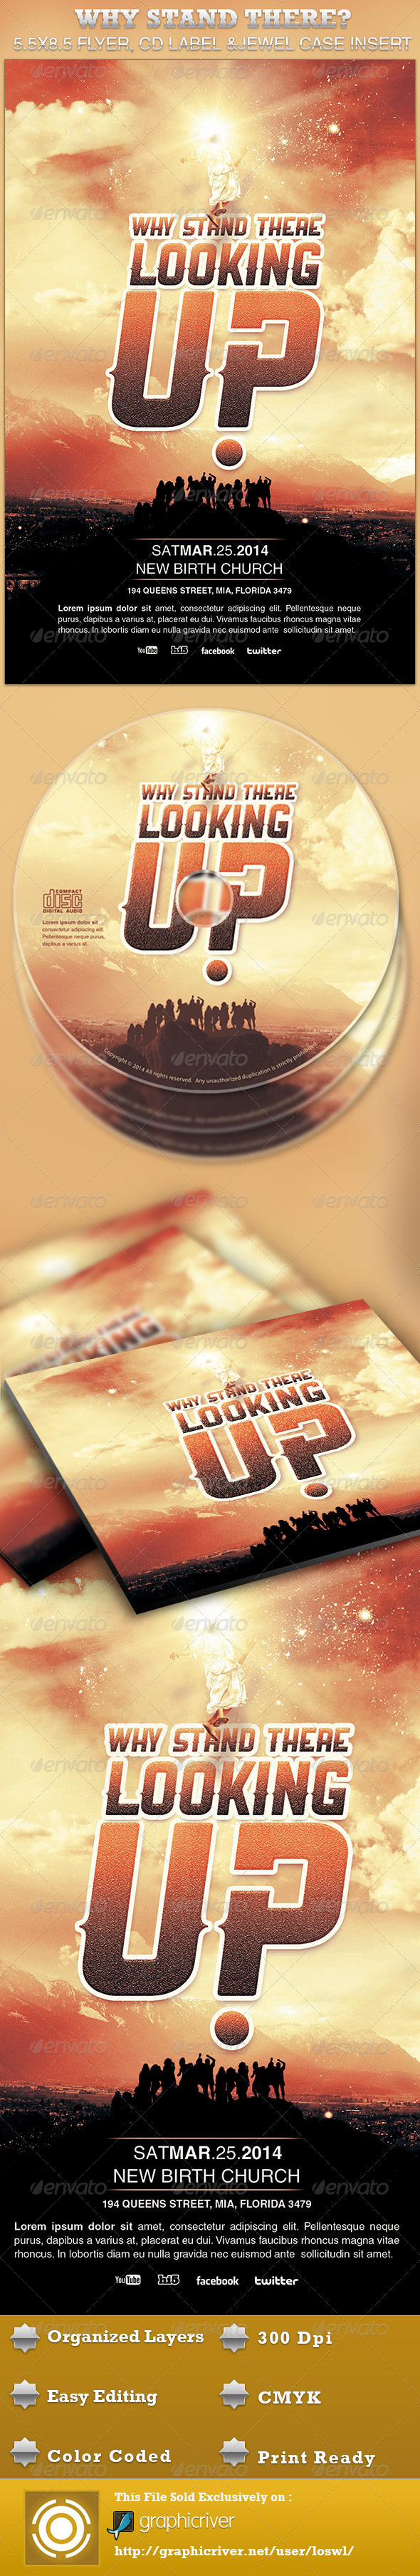 Why Stand There? Church Flyer and CD Template - Church Flyers